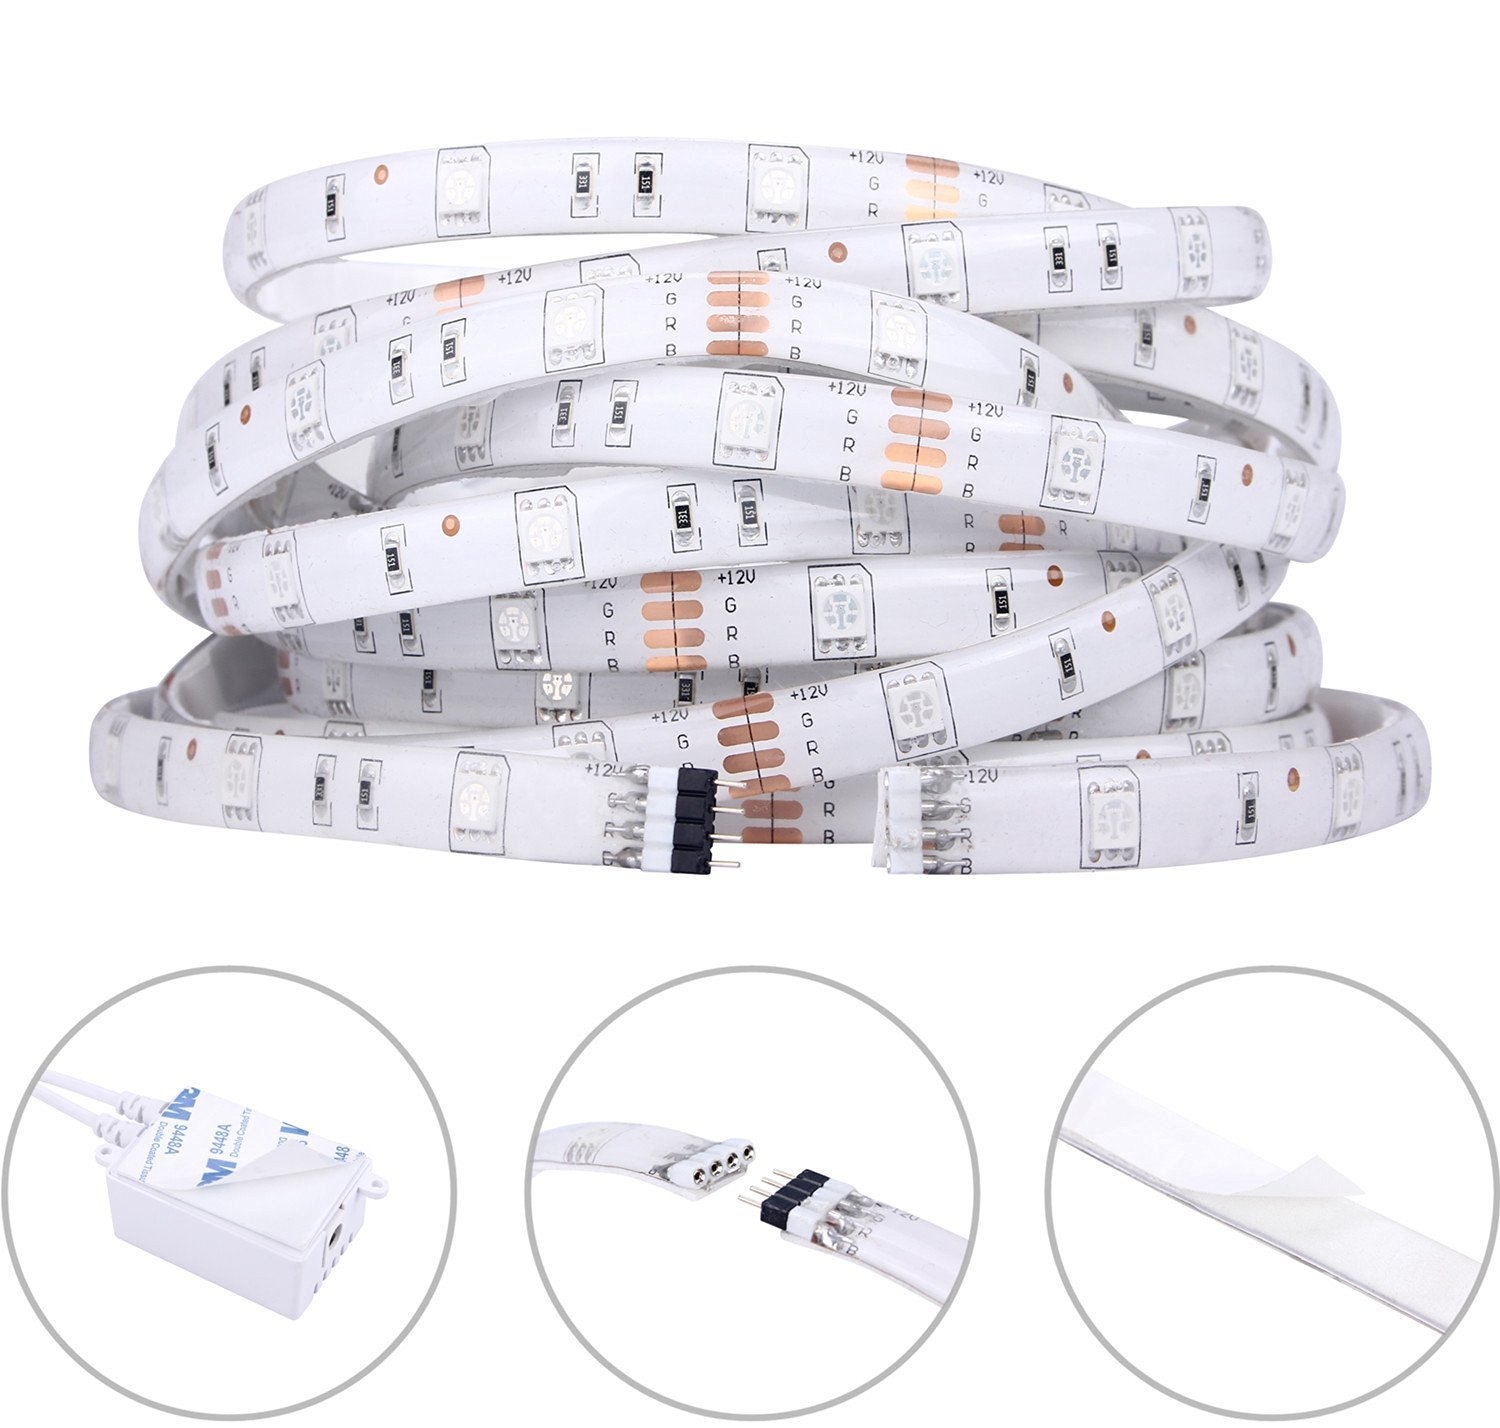 Tingkam Waterproof 5m 5050 Smd Rgb Led Strips Lighting Connectors Wiring For Single Color Strip Light Ebay Kit With 44 Key Ir Remote Controller Garden Outdoor